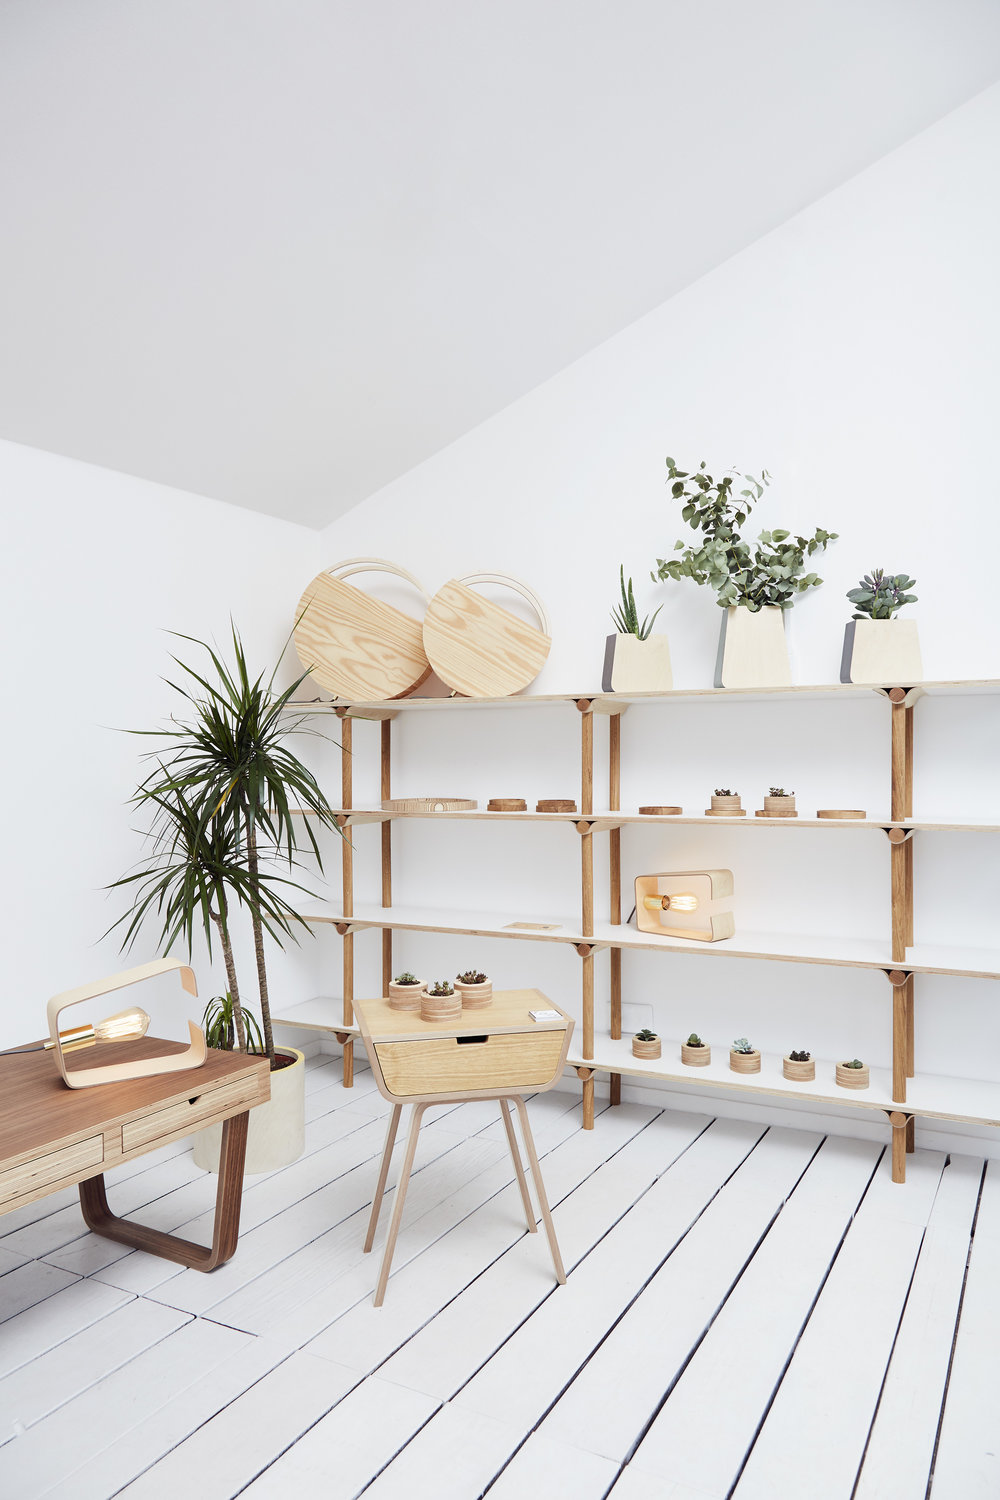 New shelving, Sunset lamp, Fab Lamp, Trays, Small planters, Wall and Table Erlen planters, Coffee table, bedside table.